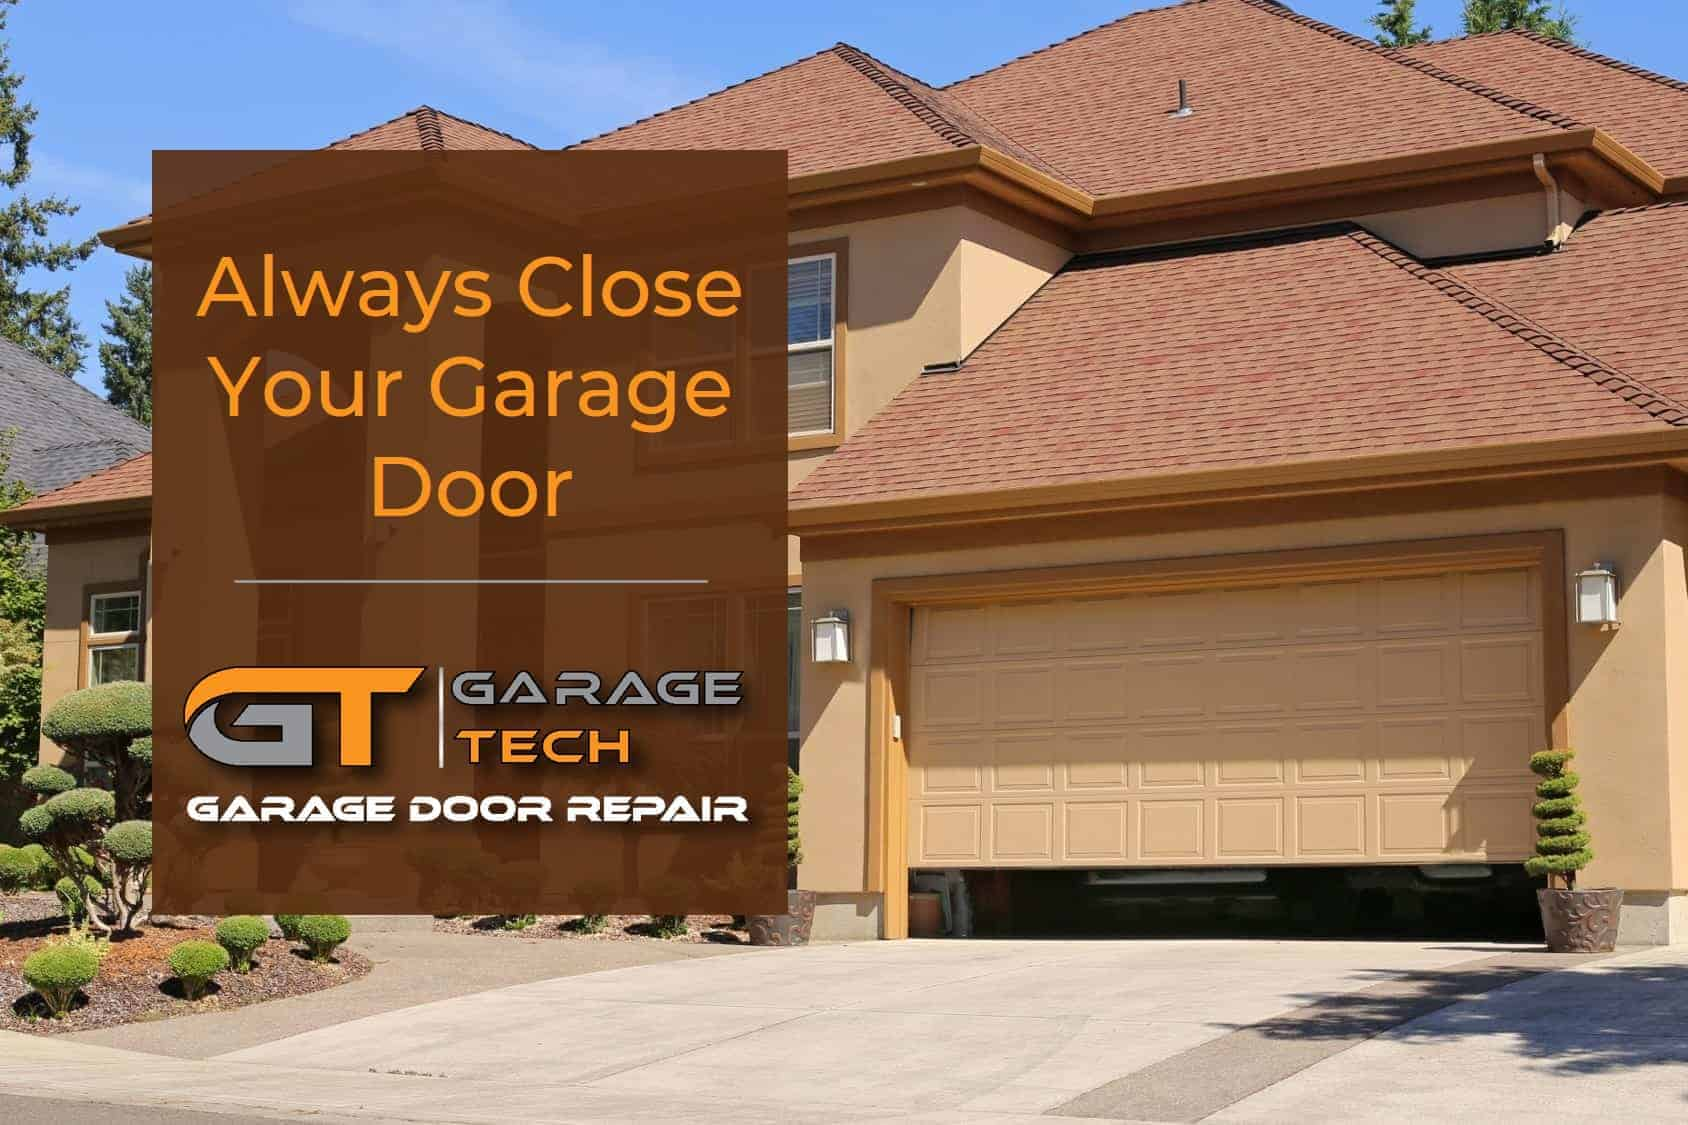 Why You Should Always Close Your Garage Door